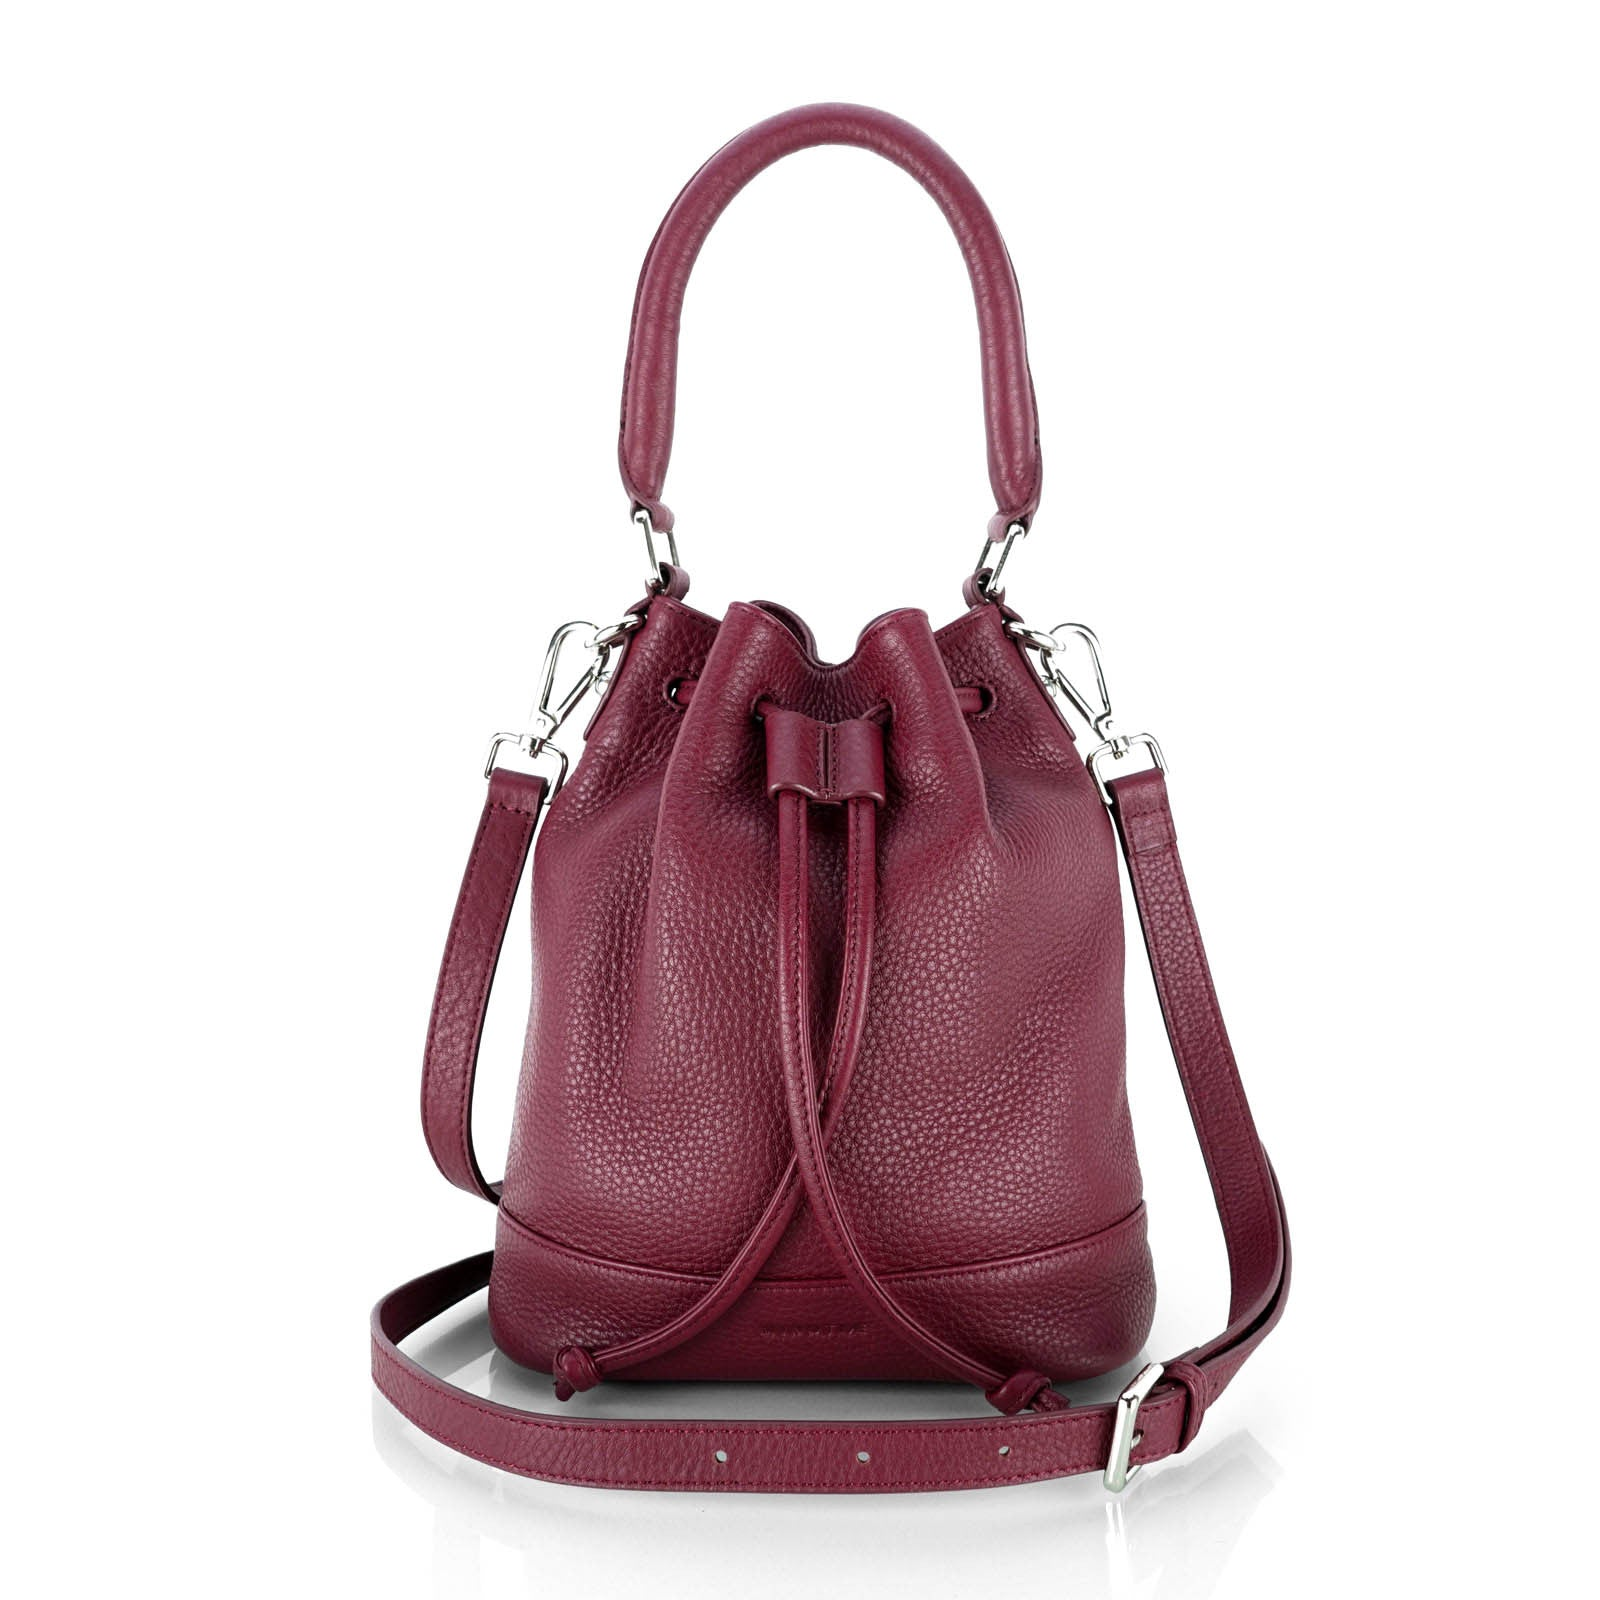 MINUTIAE Bucket Bag in Marsala Full Grain Leather